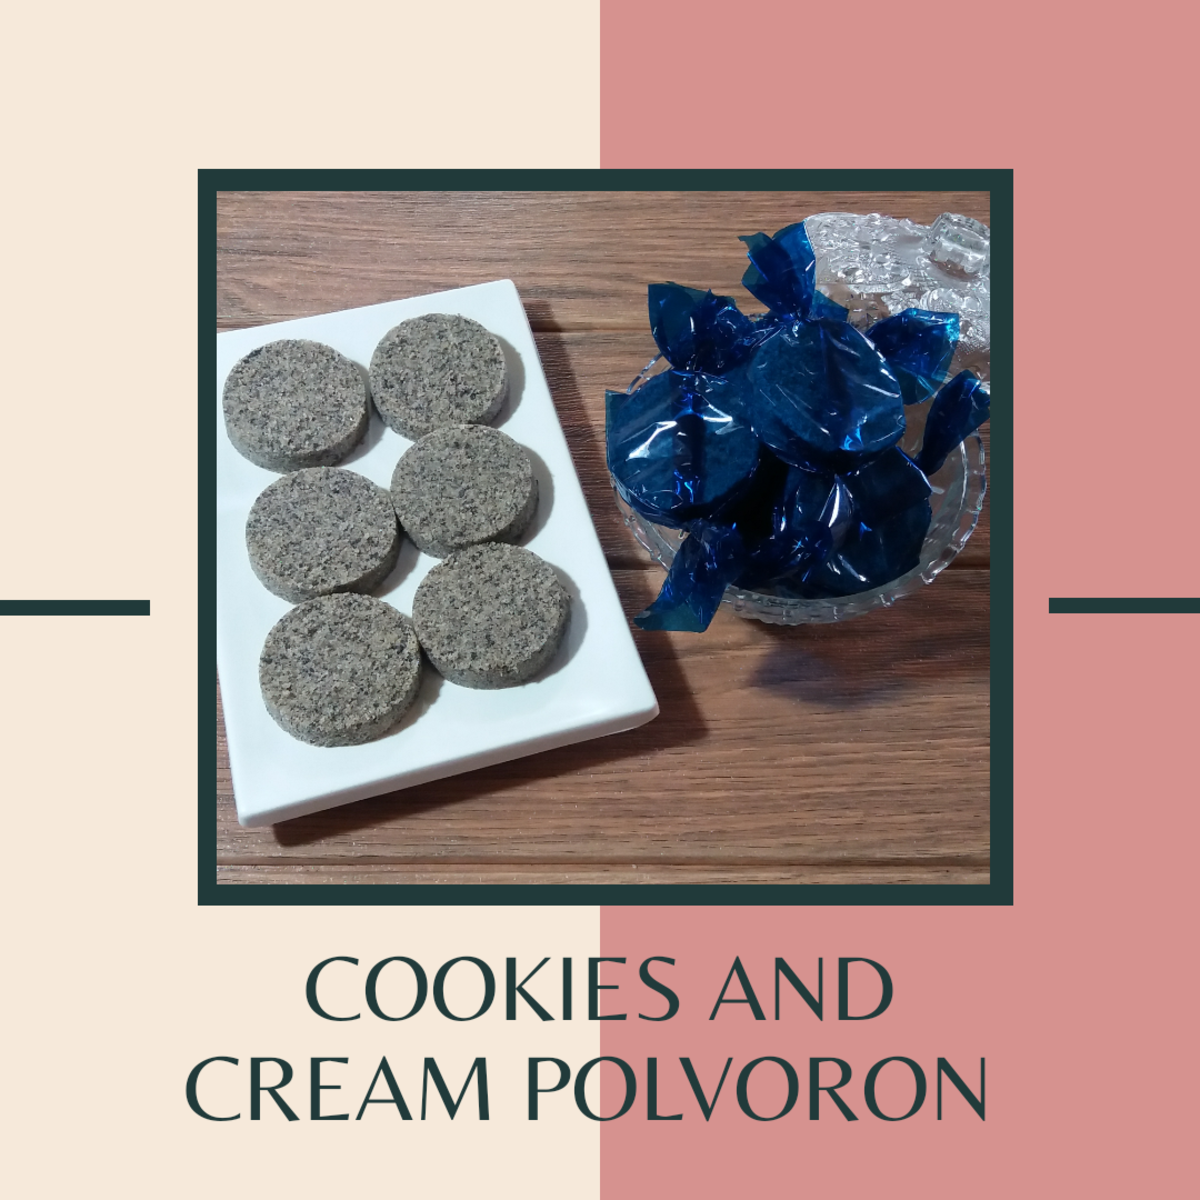 How to Make Cookies and Cream Polvoron (Shortbread)